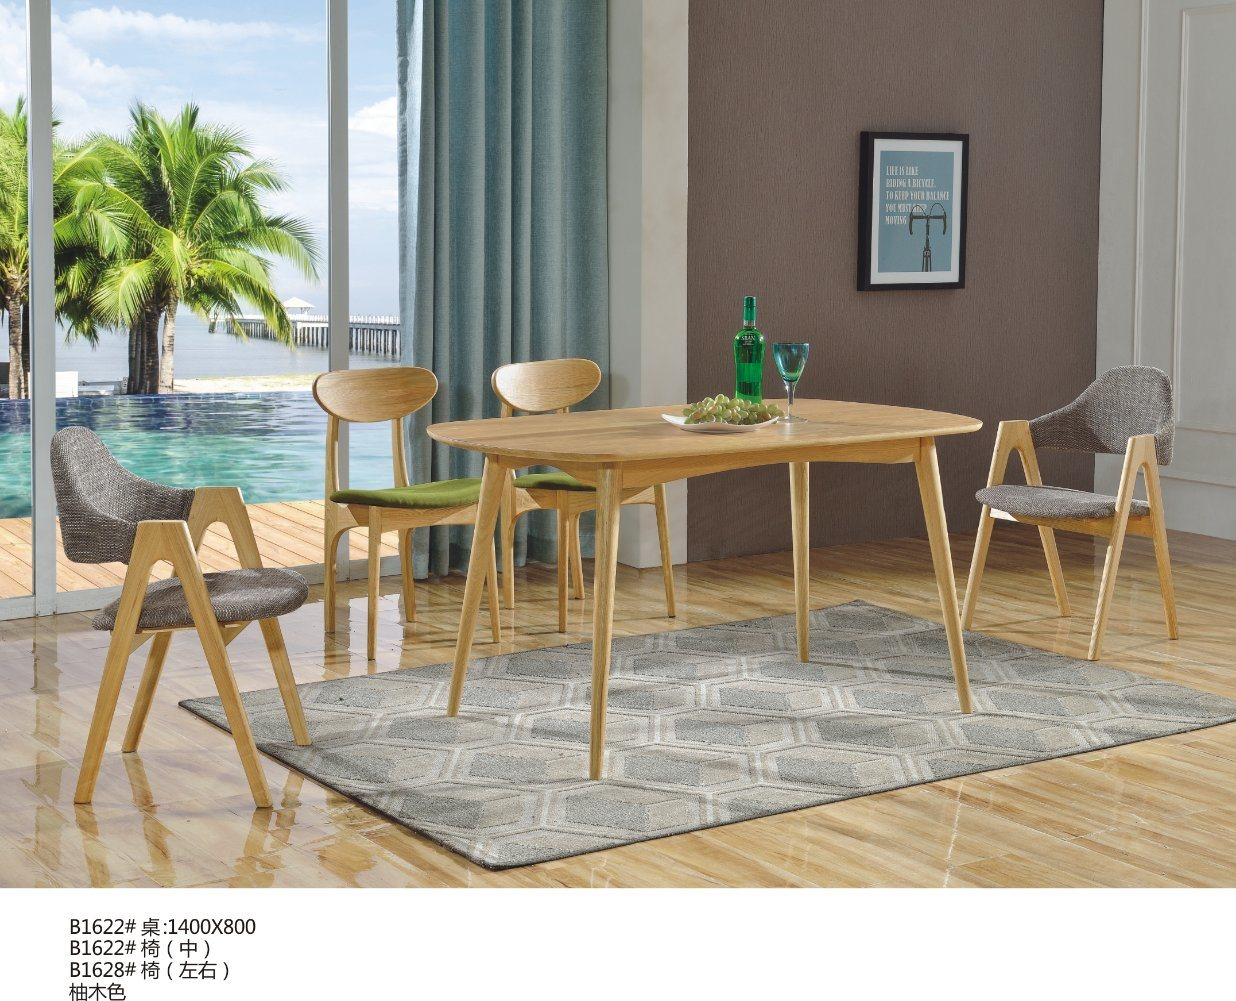 Wooden Chairs Furniture Bar Chairs